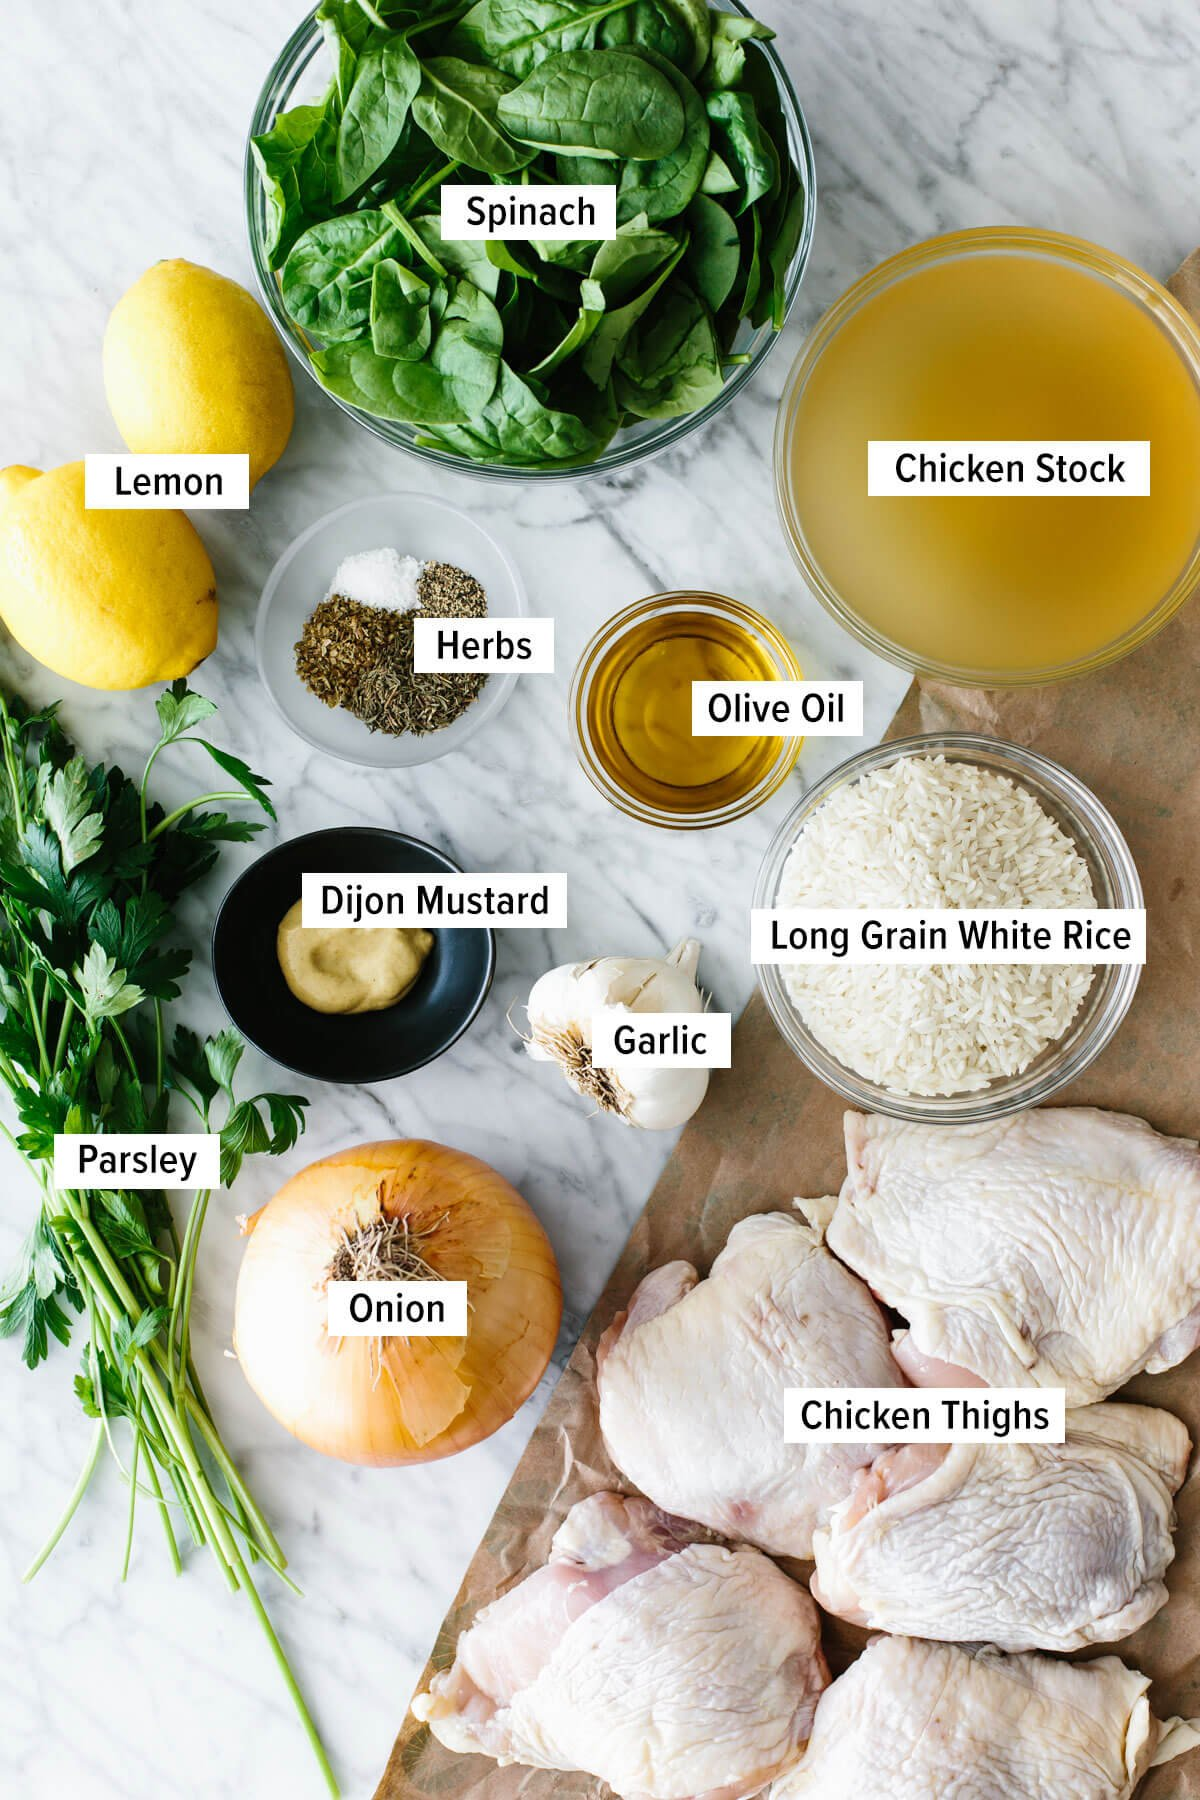 Ingredients for chicken and rice on a table